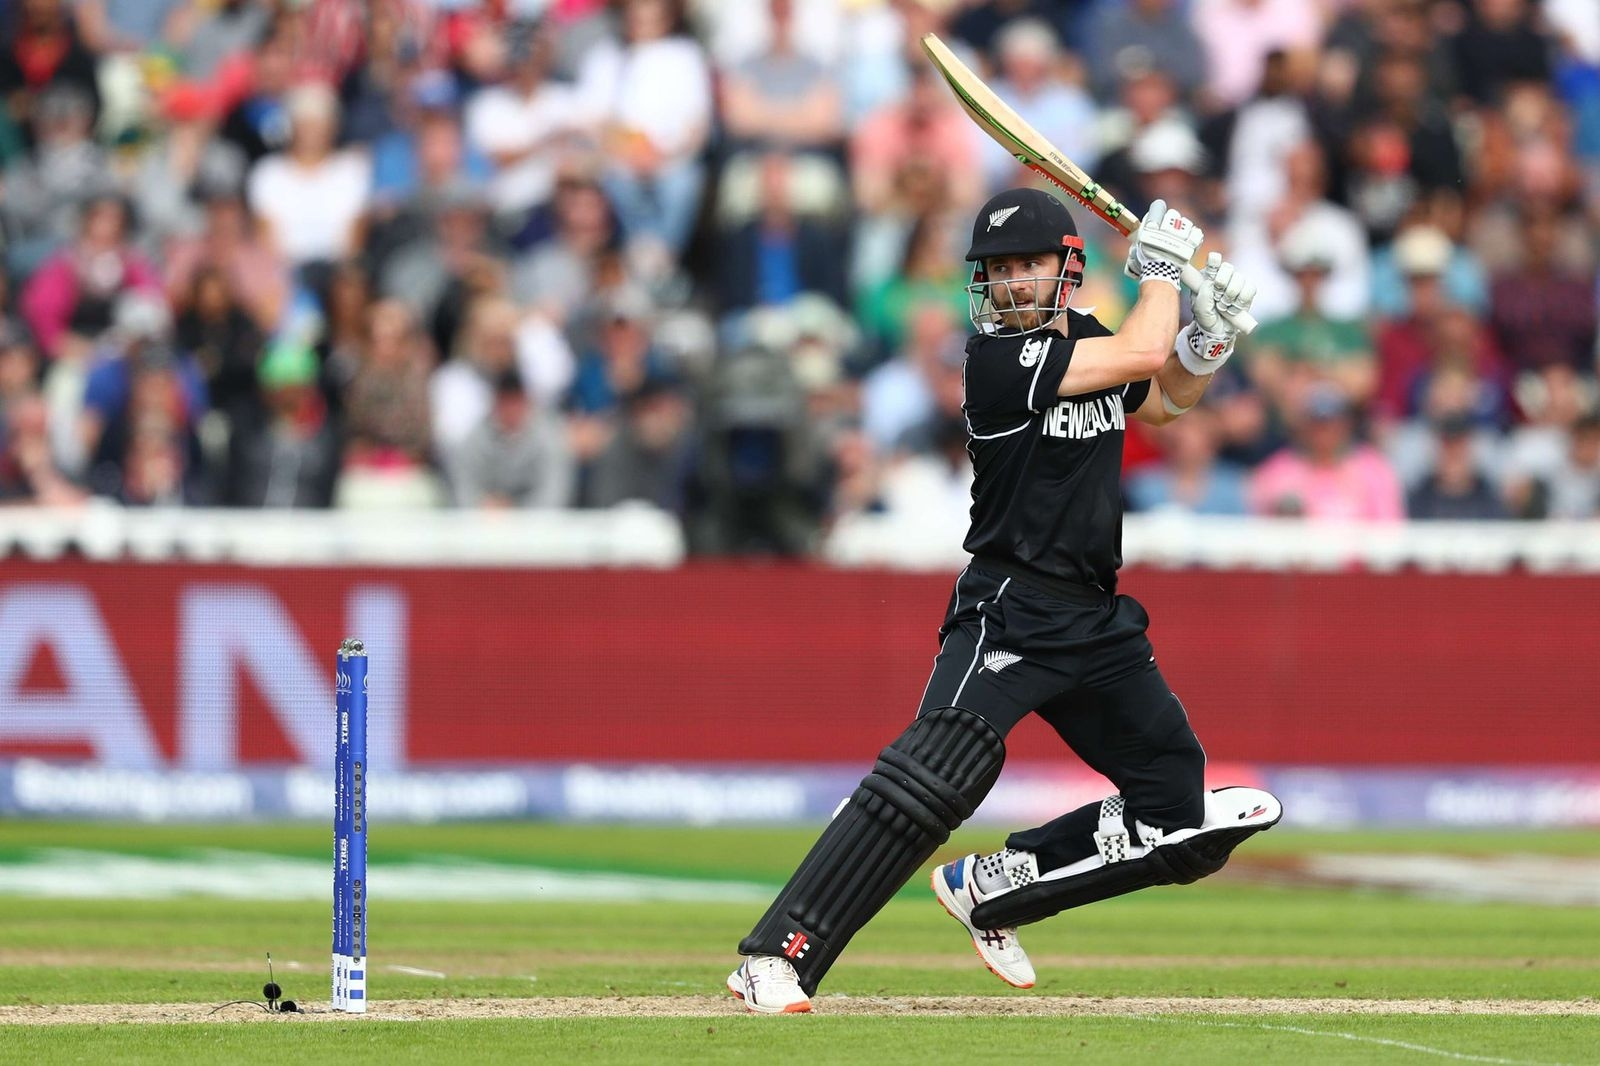 T20 World Cup: Hamstring is fine but elbow needs time, says NZ captain Williamson